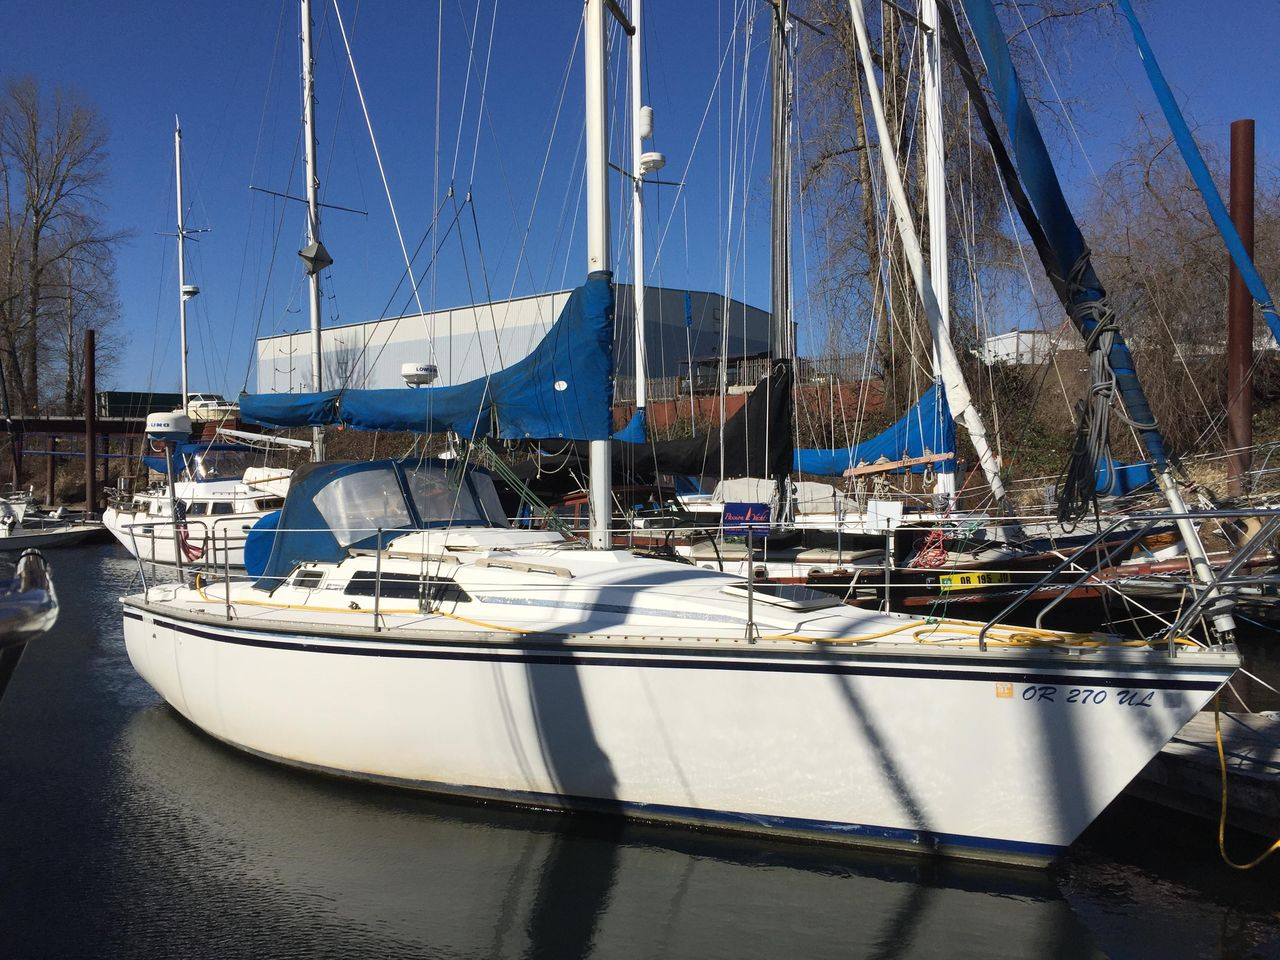 1987 Used Hunter 28 5 Sloop Sailboat For Sale - $11,000 - Portland